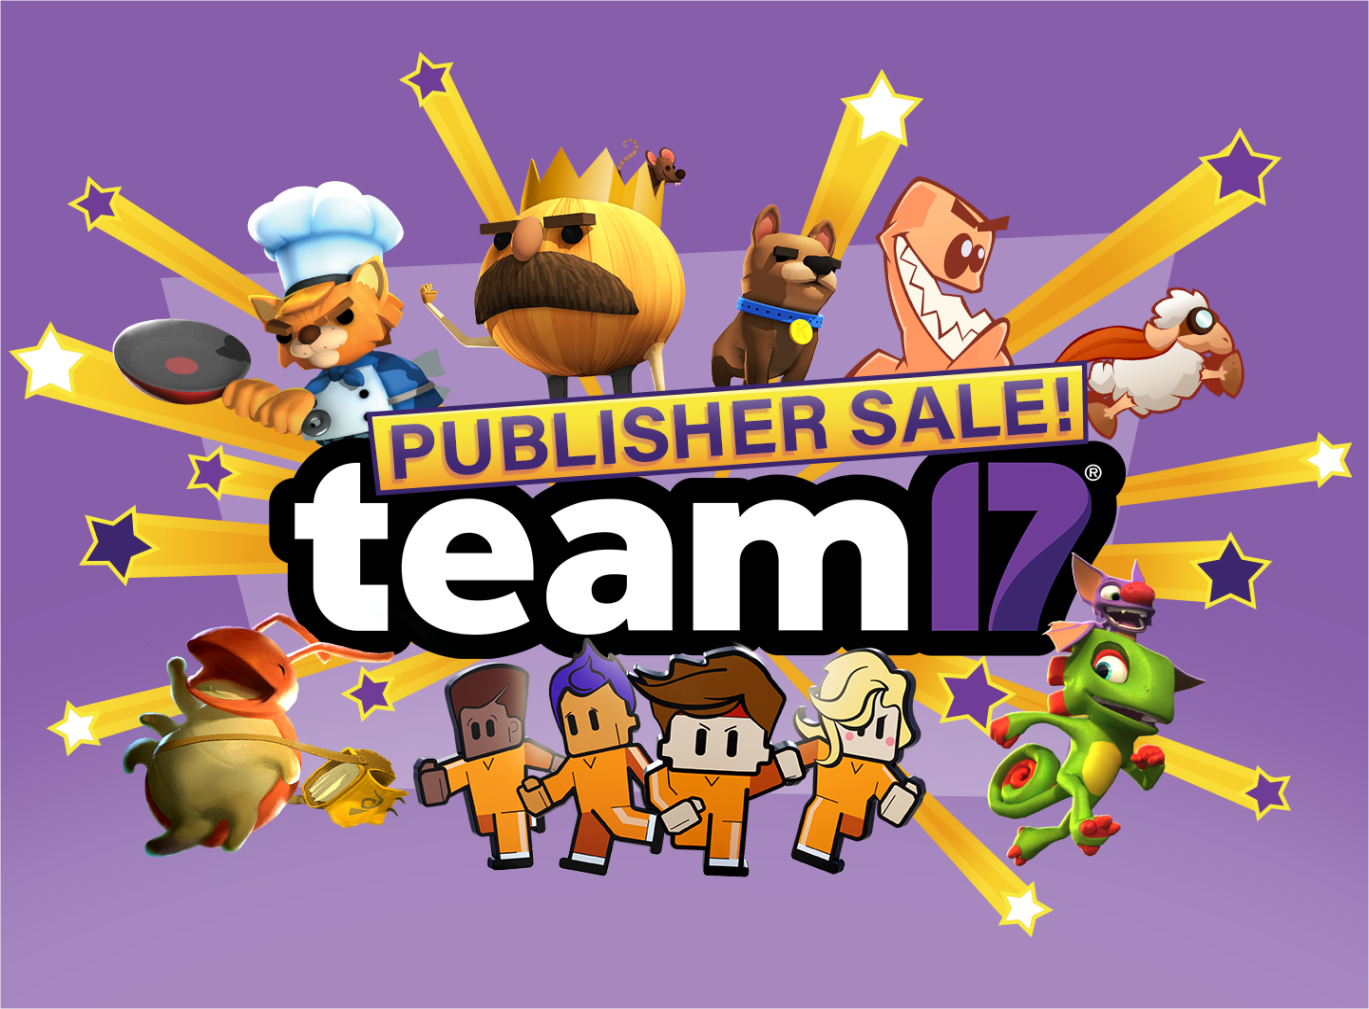 The Team17 Publisher Sale is open on Xbox One!